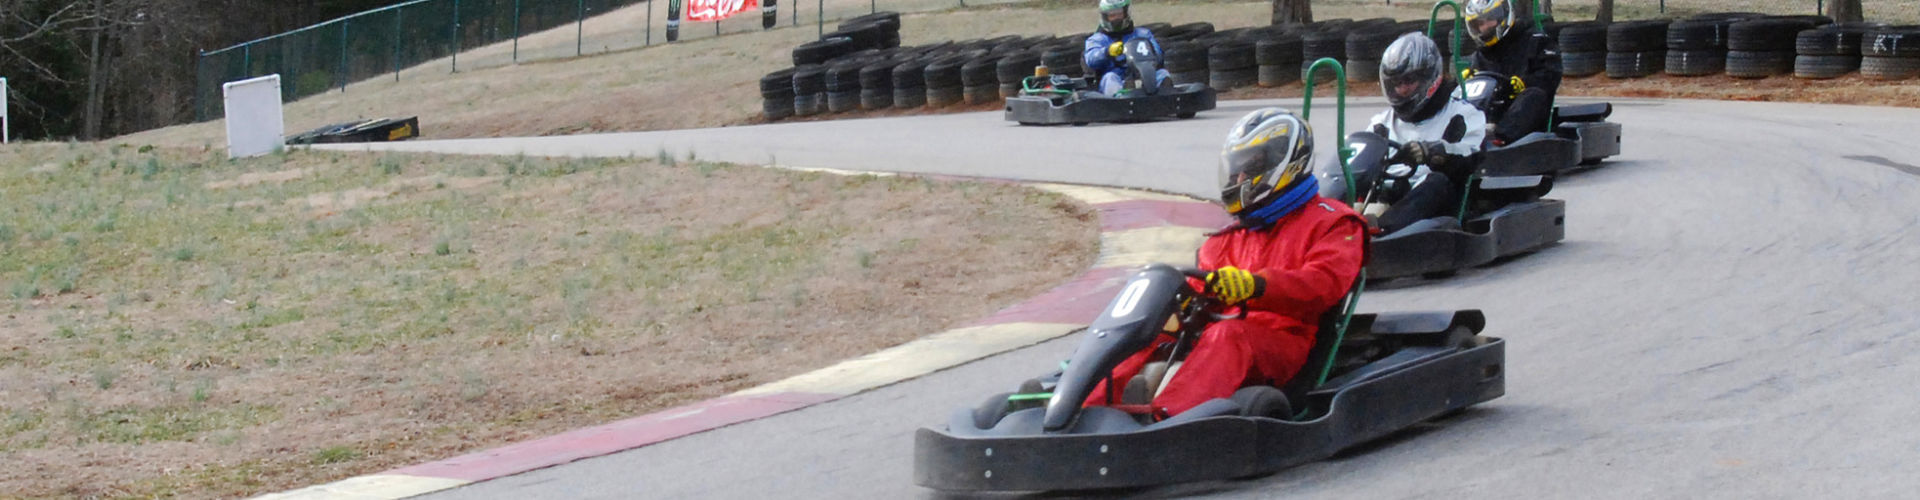 Virginia International Raceway Gokarts